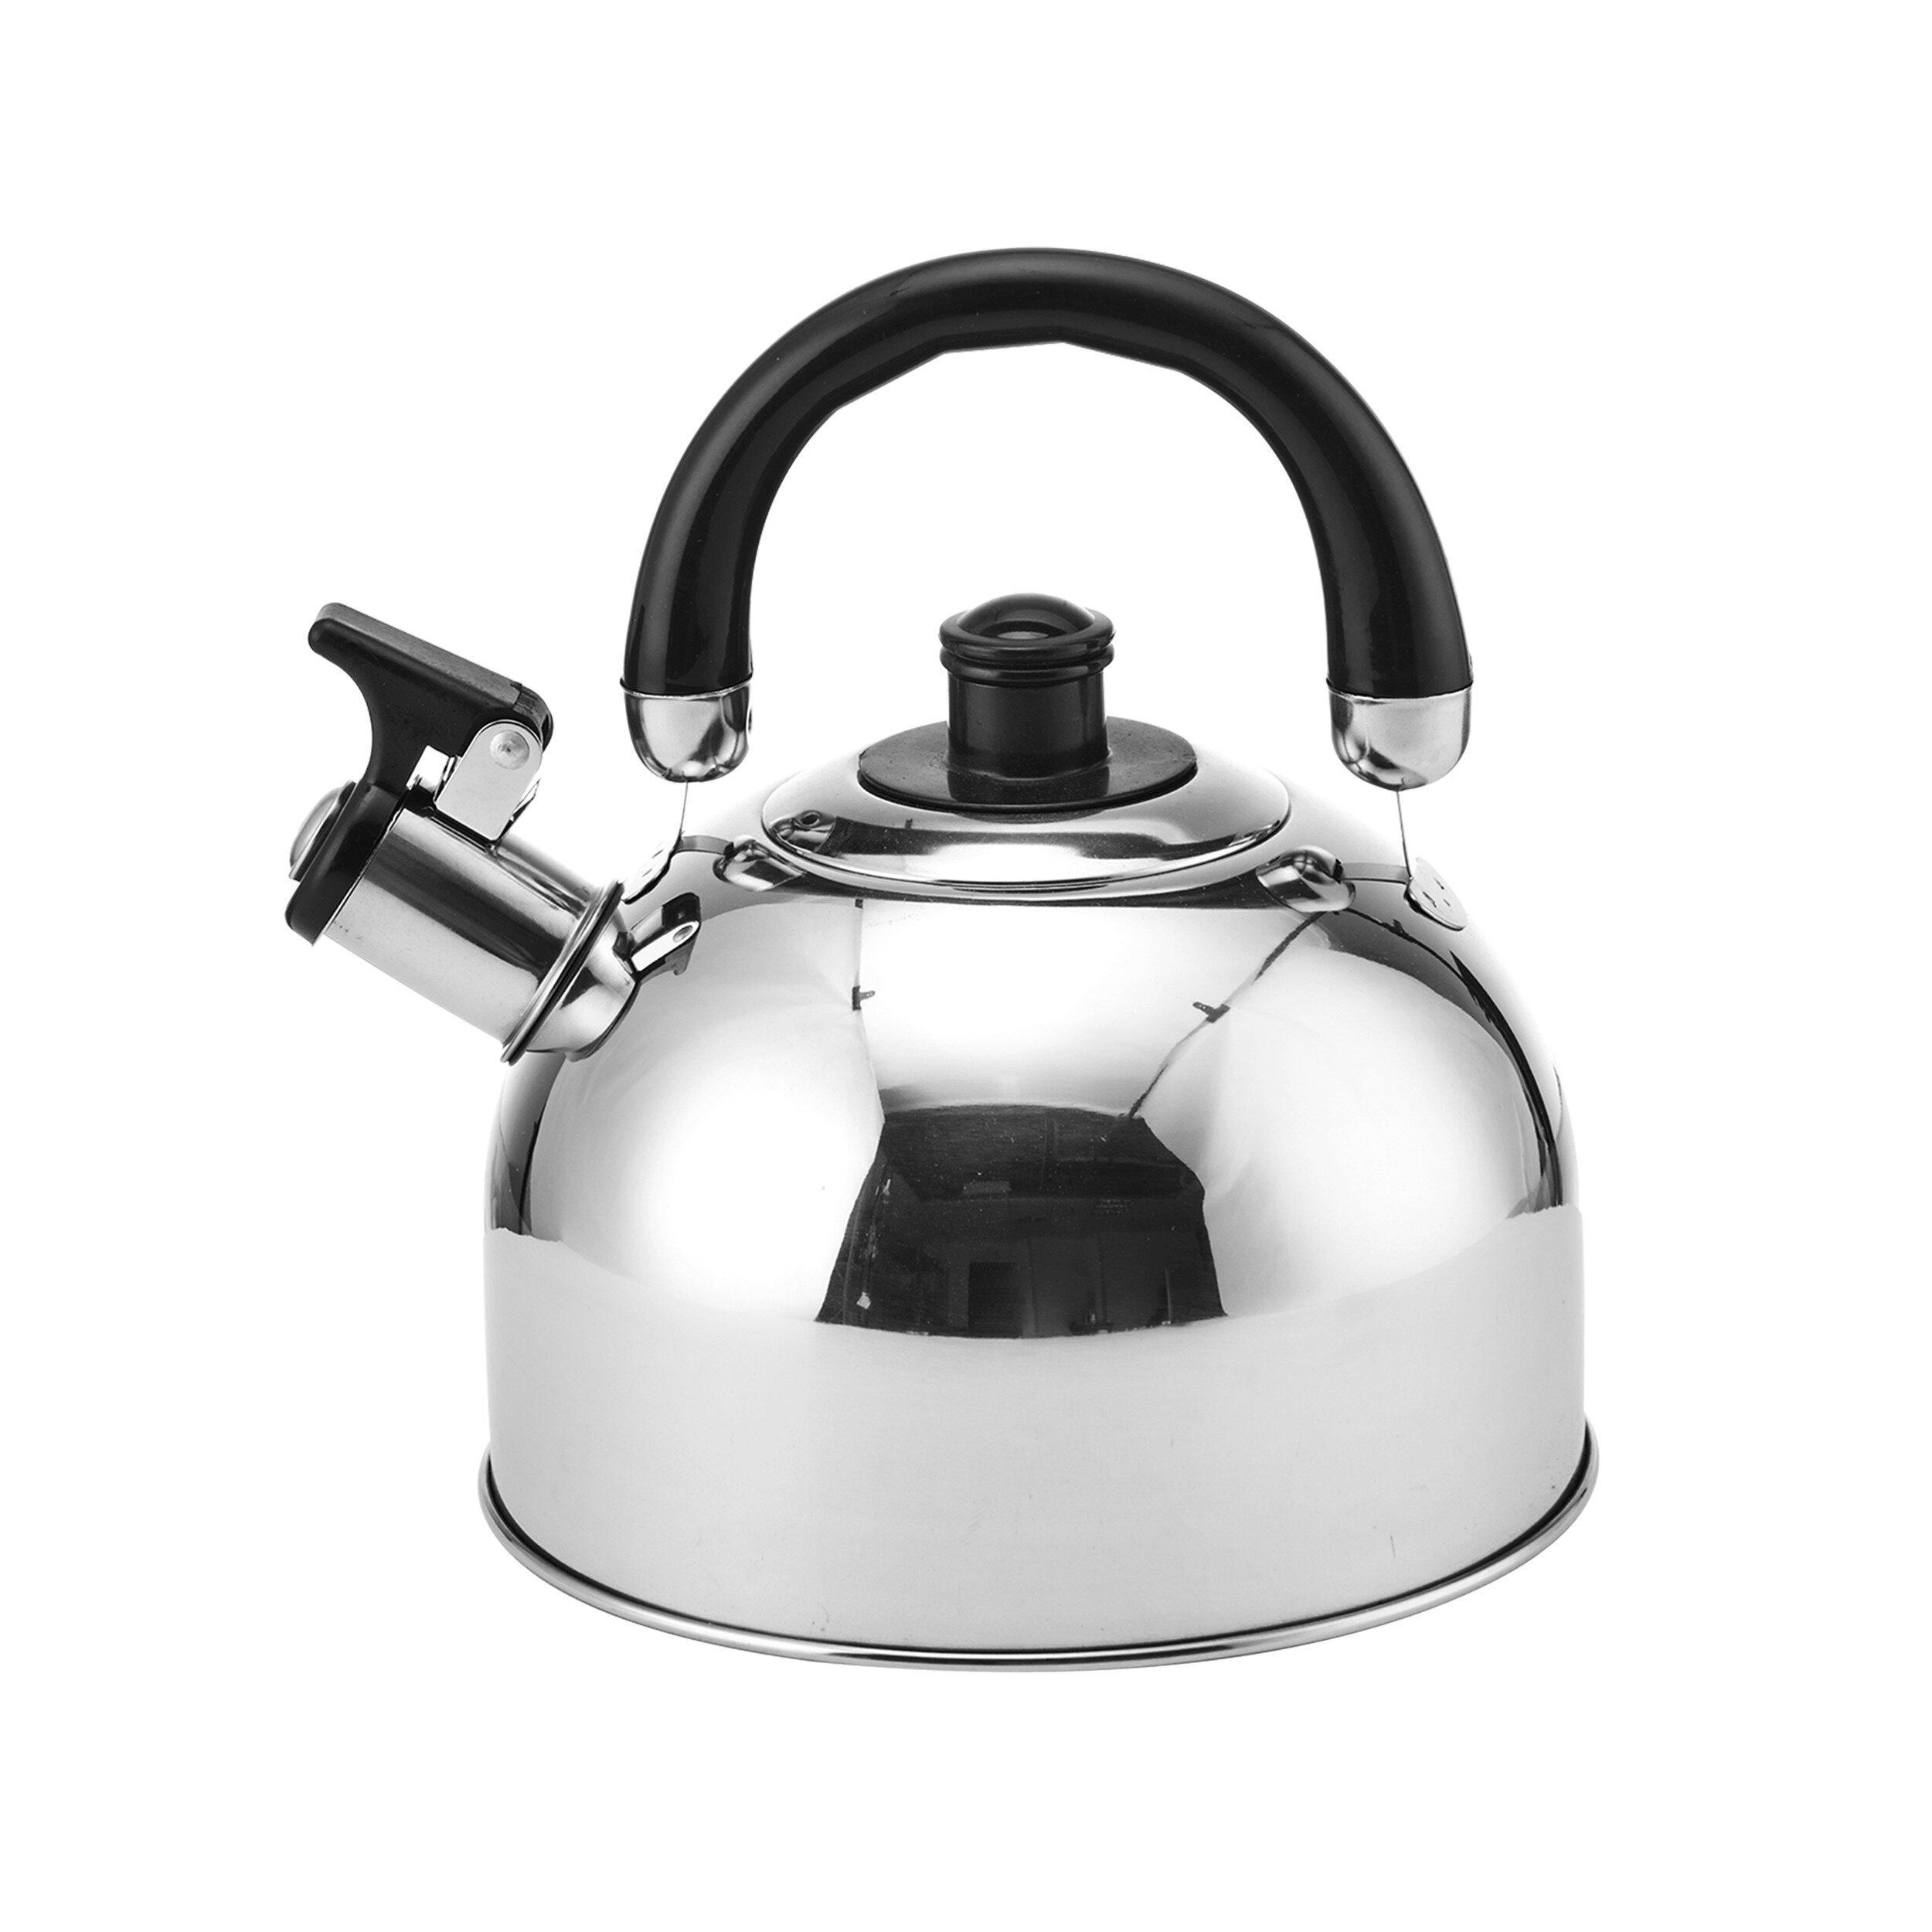 Top Quality Kettle with A Whistle Made of High Quality Stainless Steel Black Marble